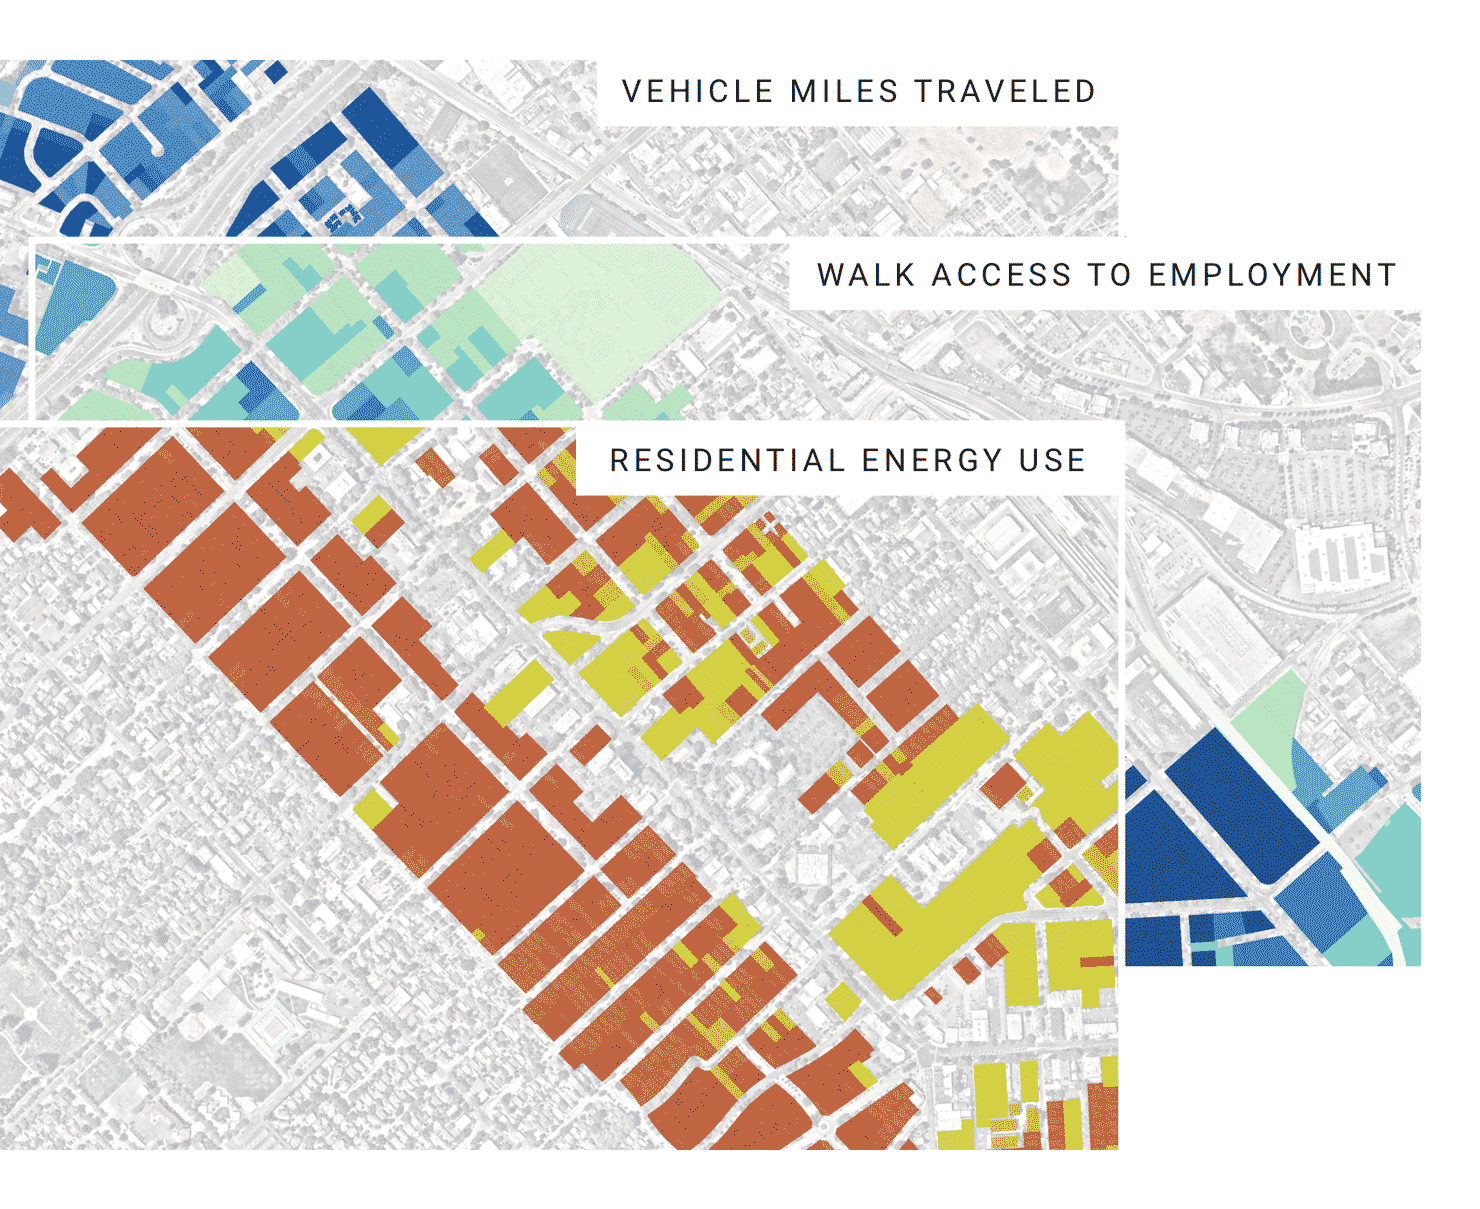 Maps showing different analysis types of a development corridor